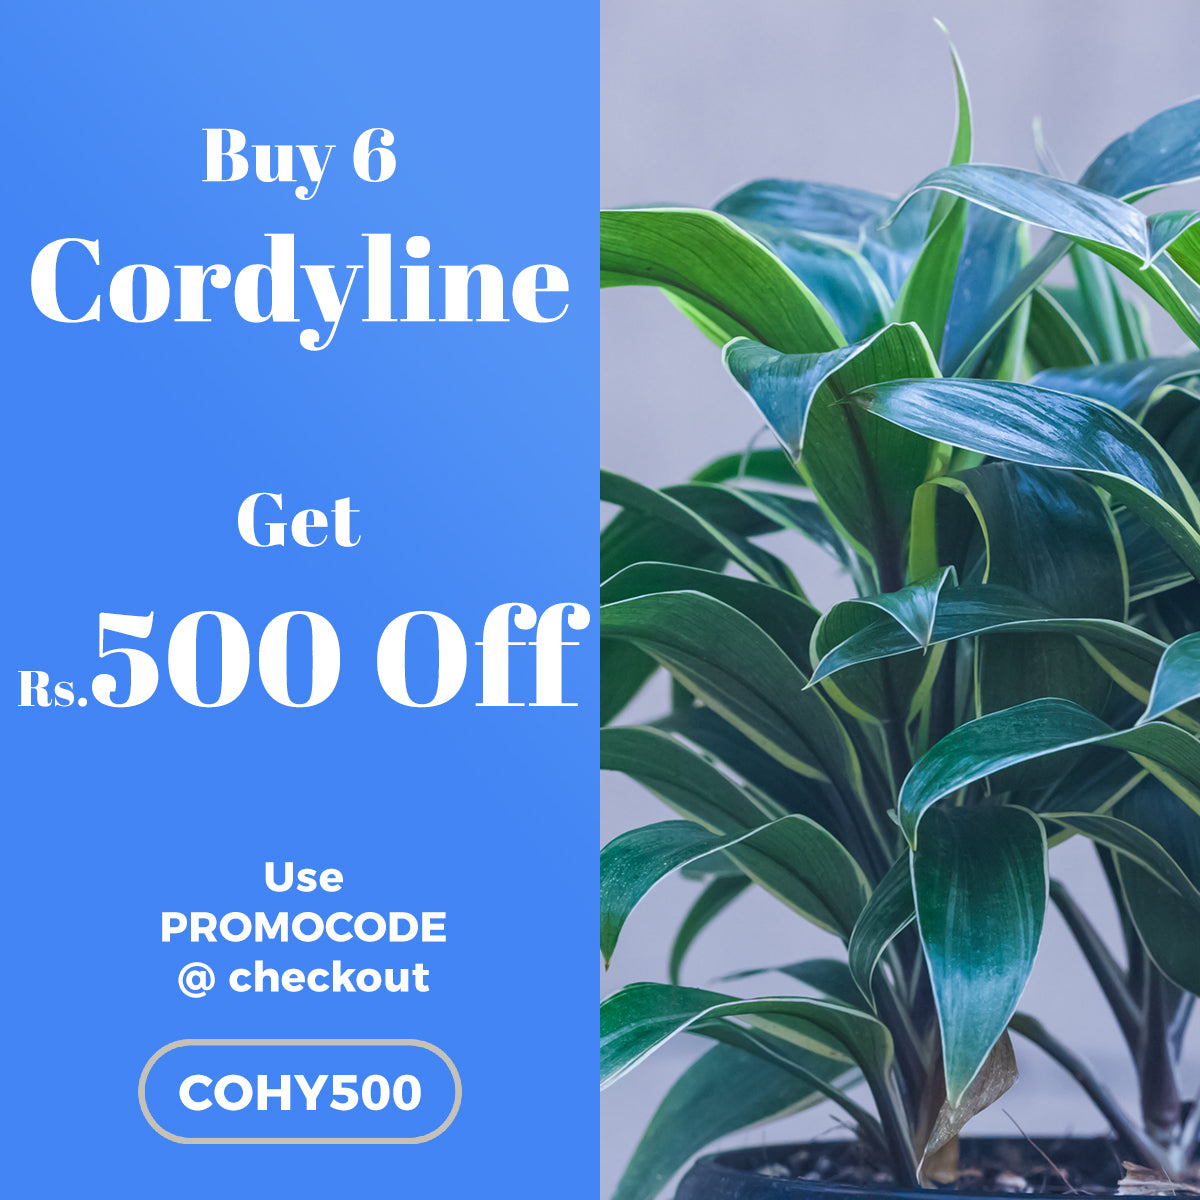 Buy 6 Cordyline Fruticosa and get Rs.500 OFF